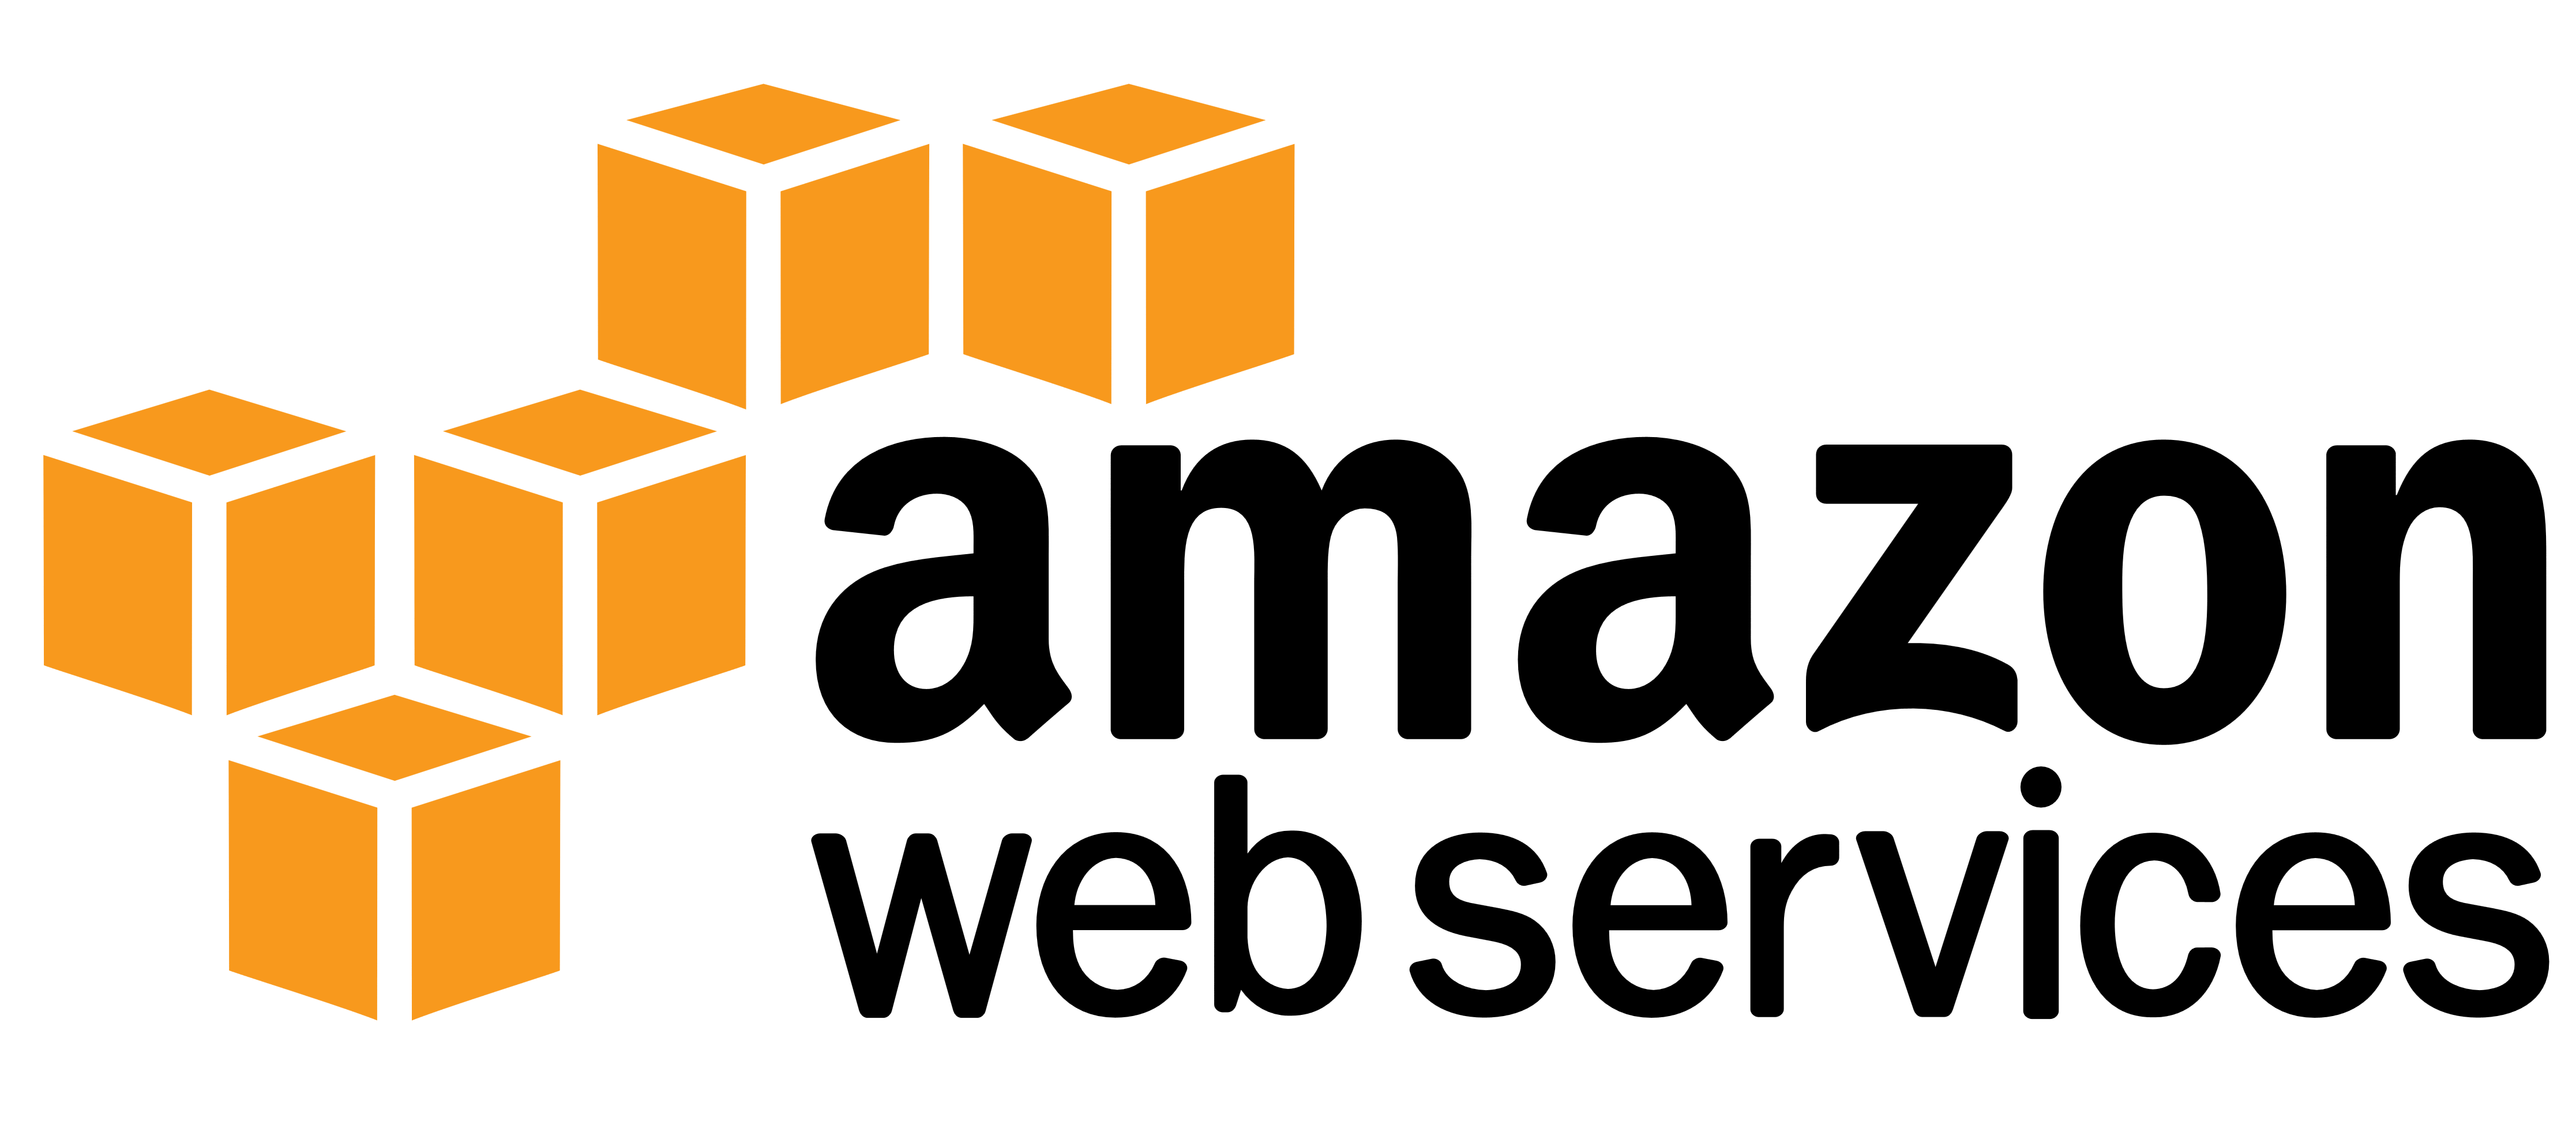 Как установить сертификат SSL на Amazon Web Services (AWS)